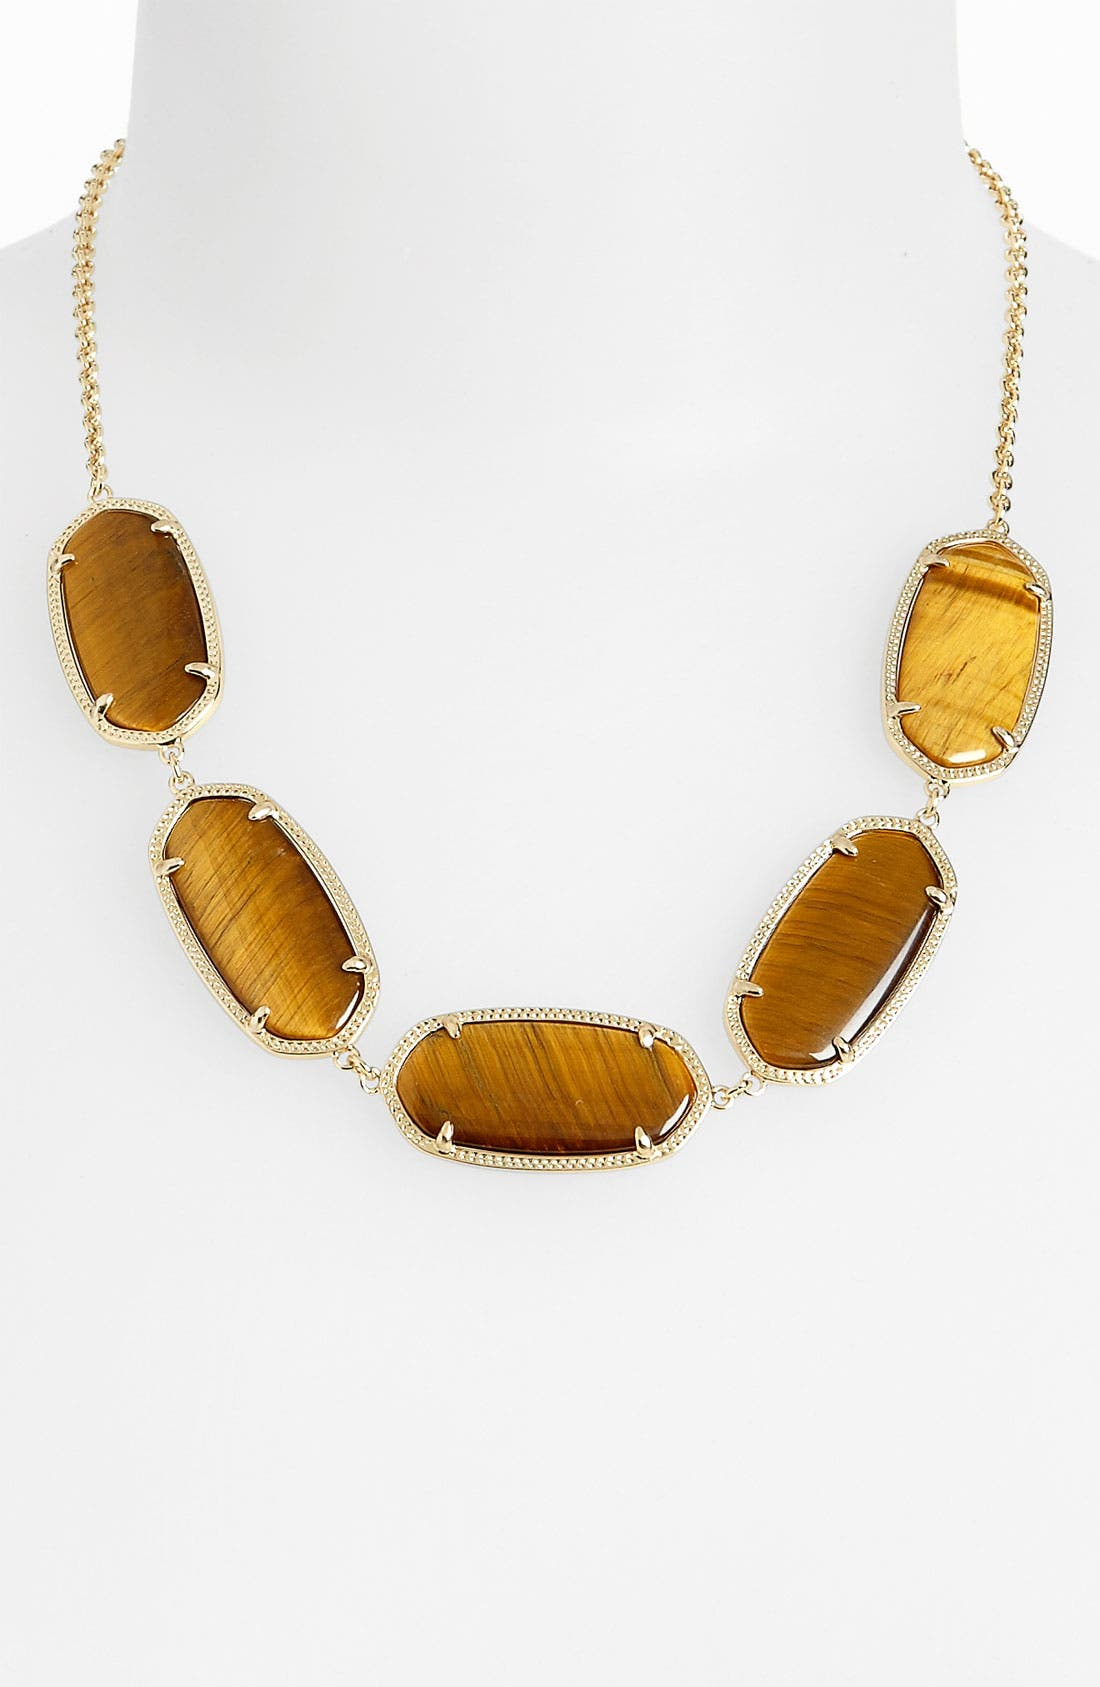 Main Image - Kendra Scott 'Aimee' Collar Necklace